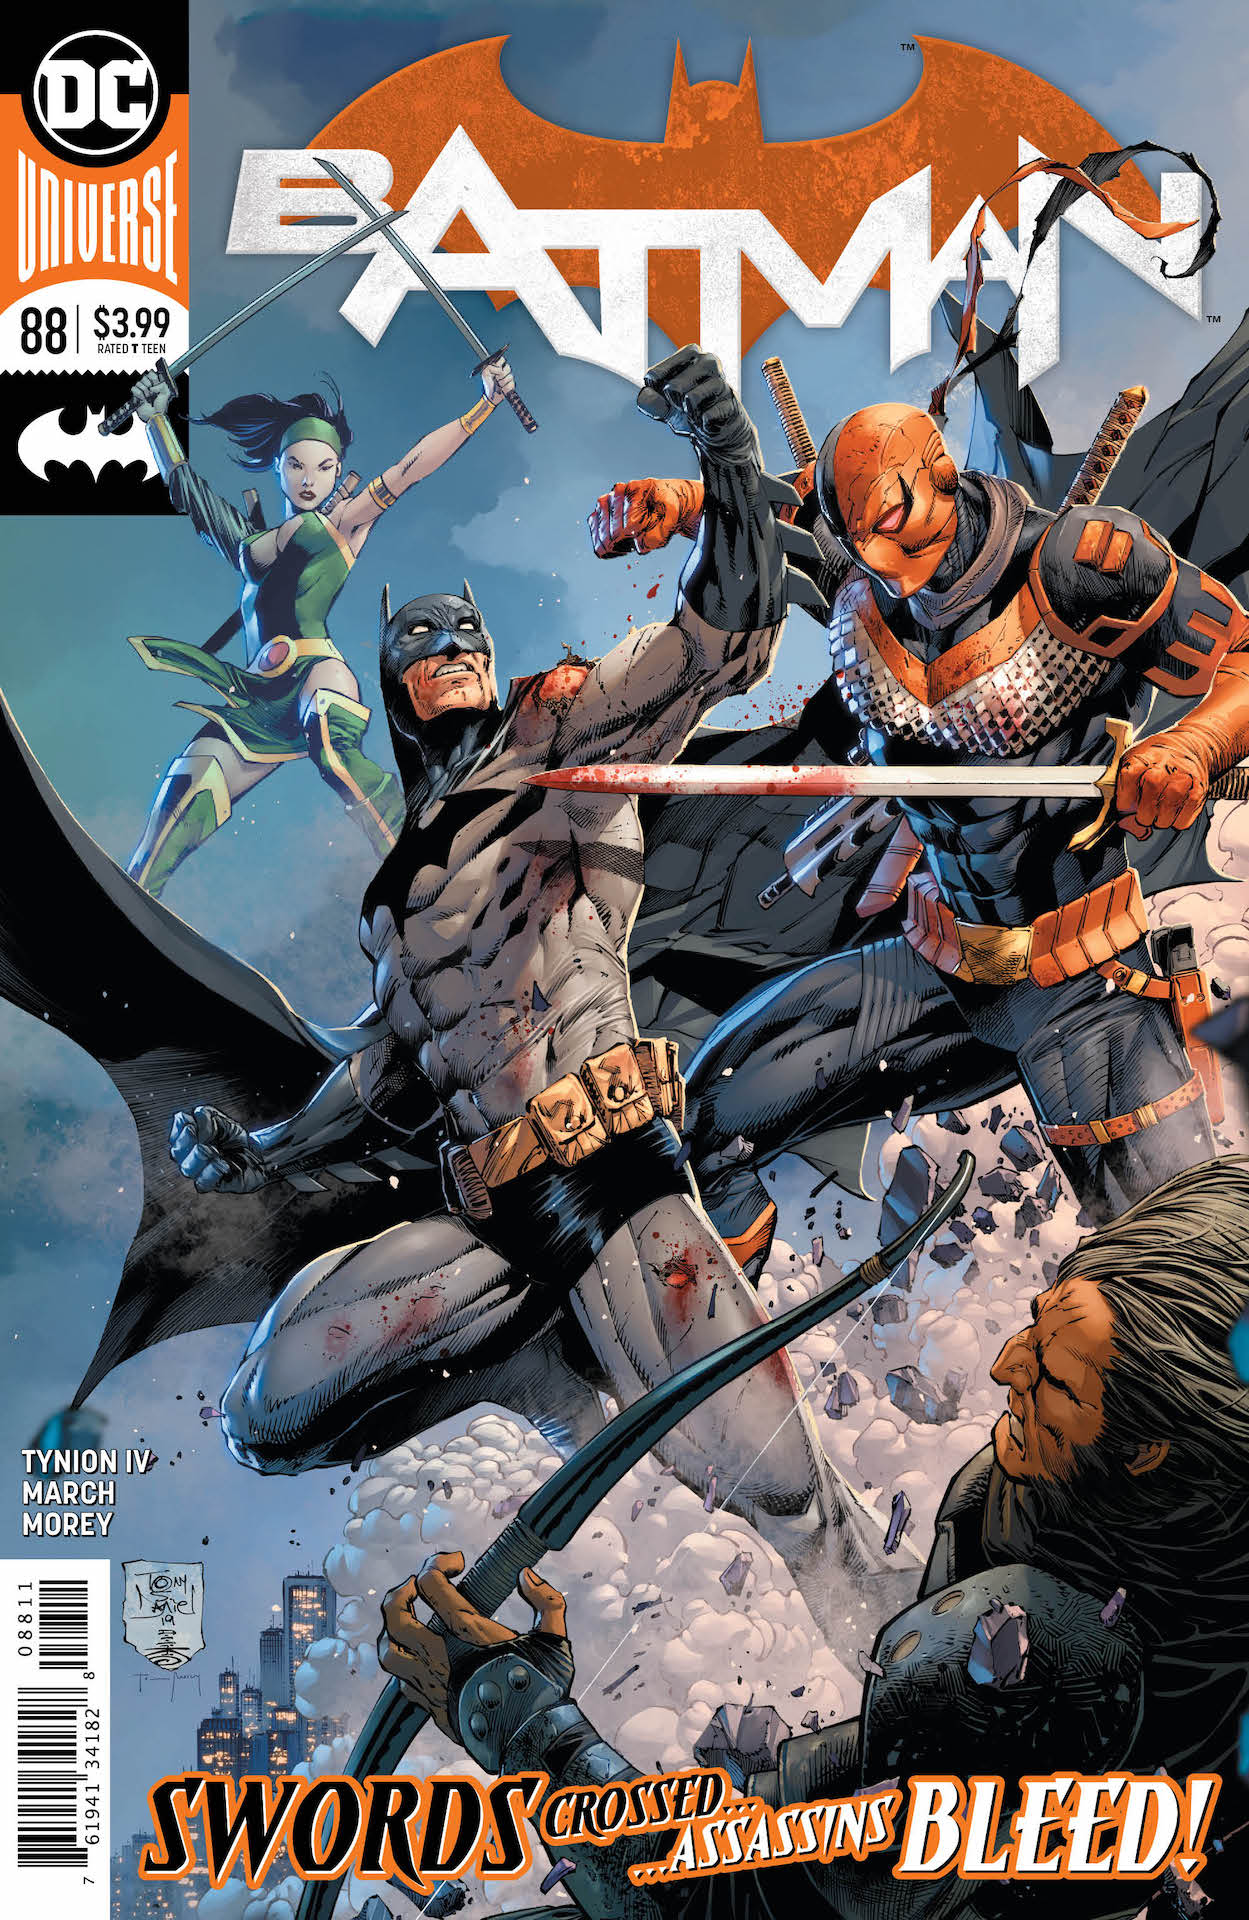 DC Preview: Batman #88